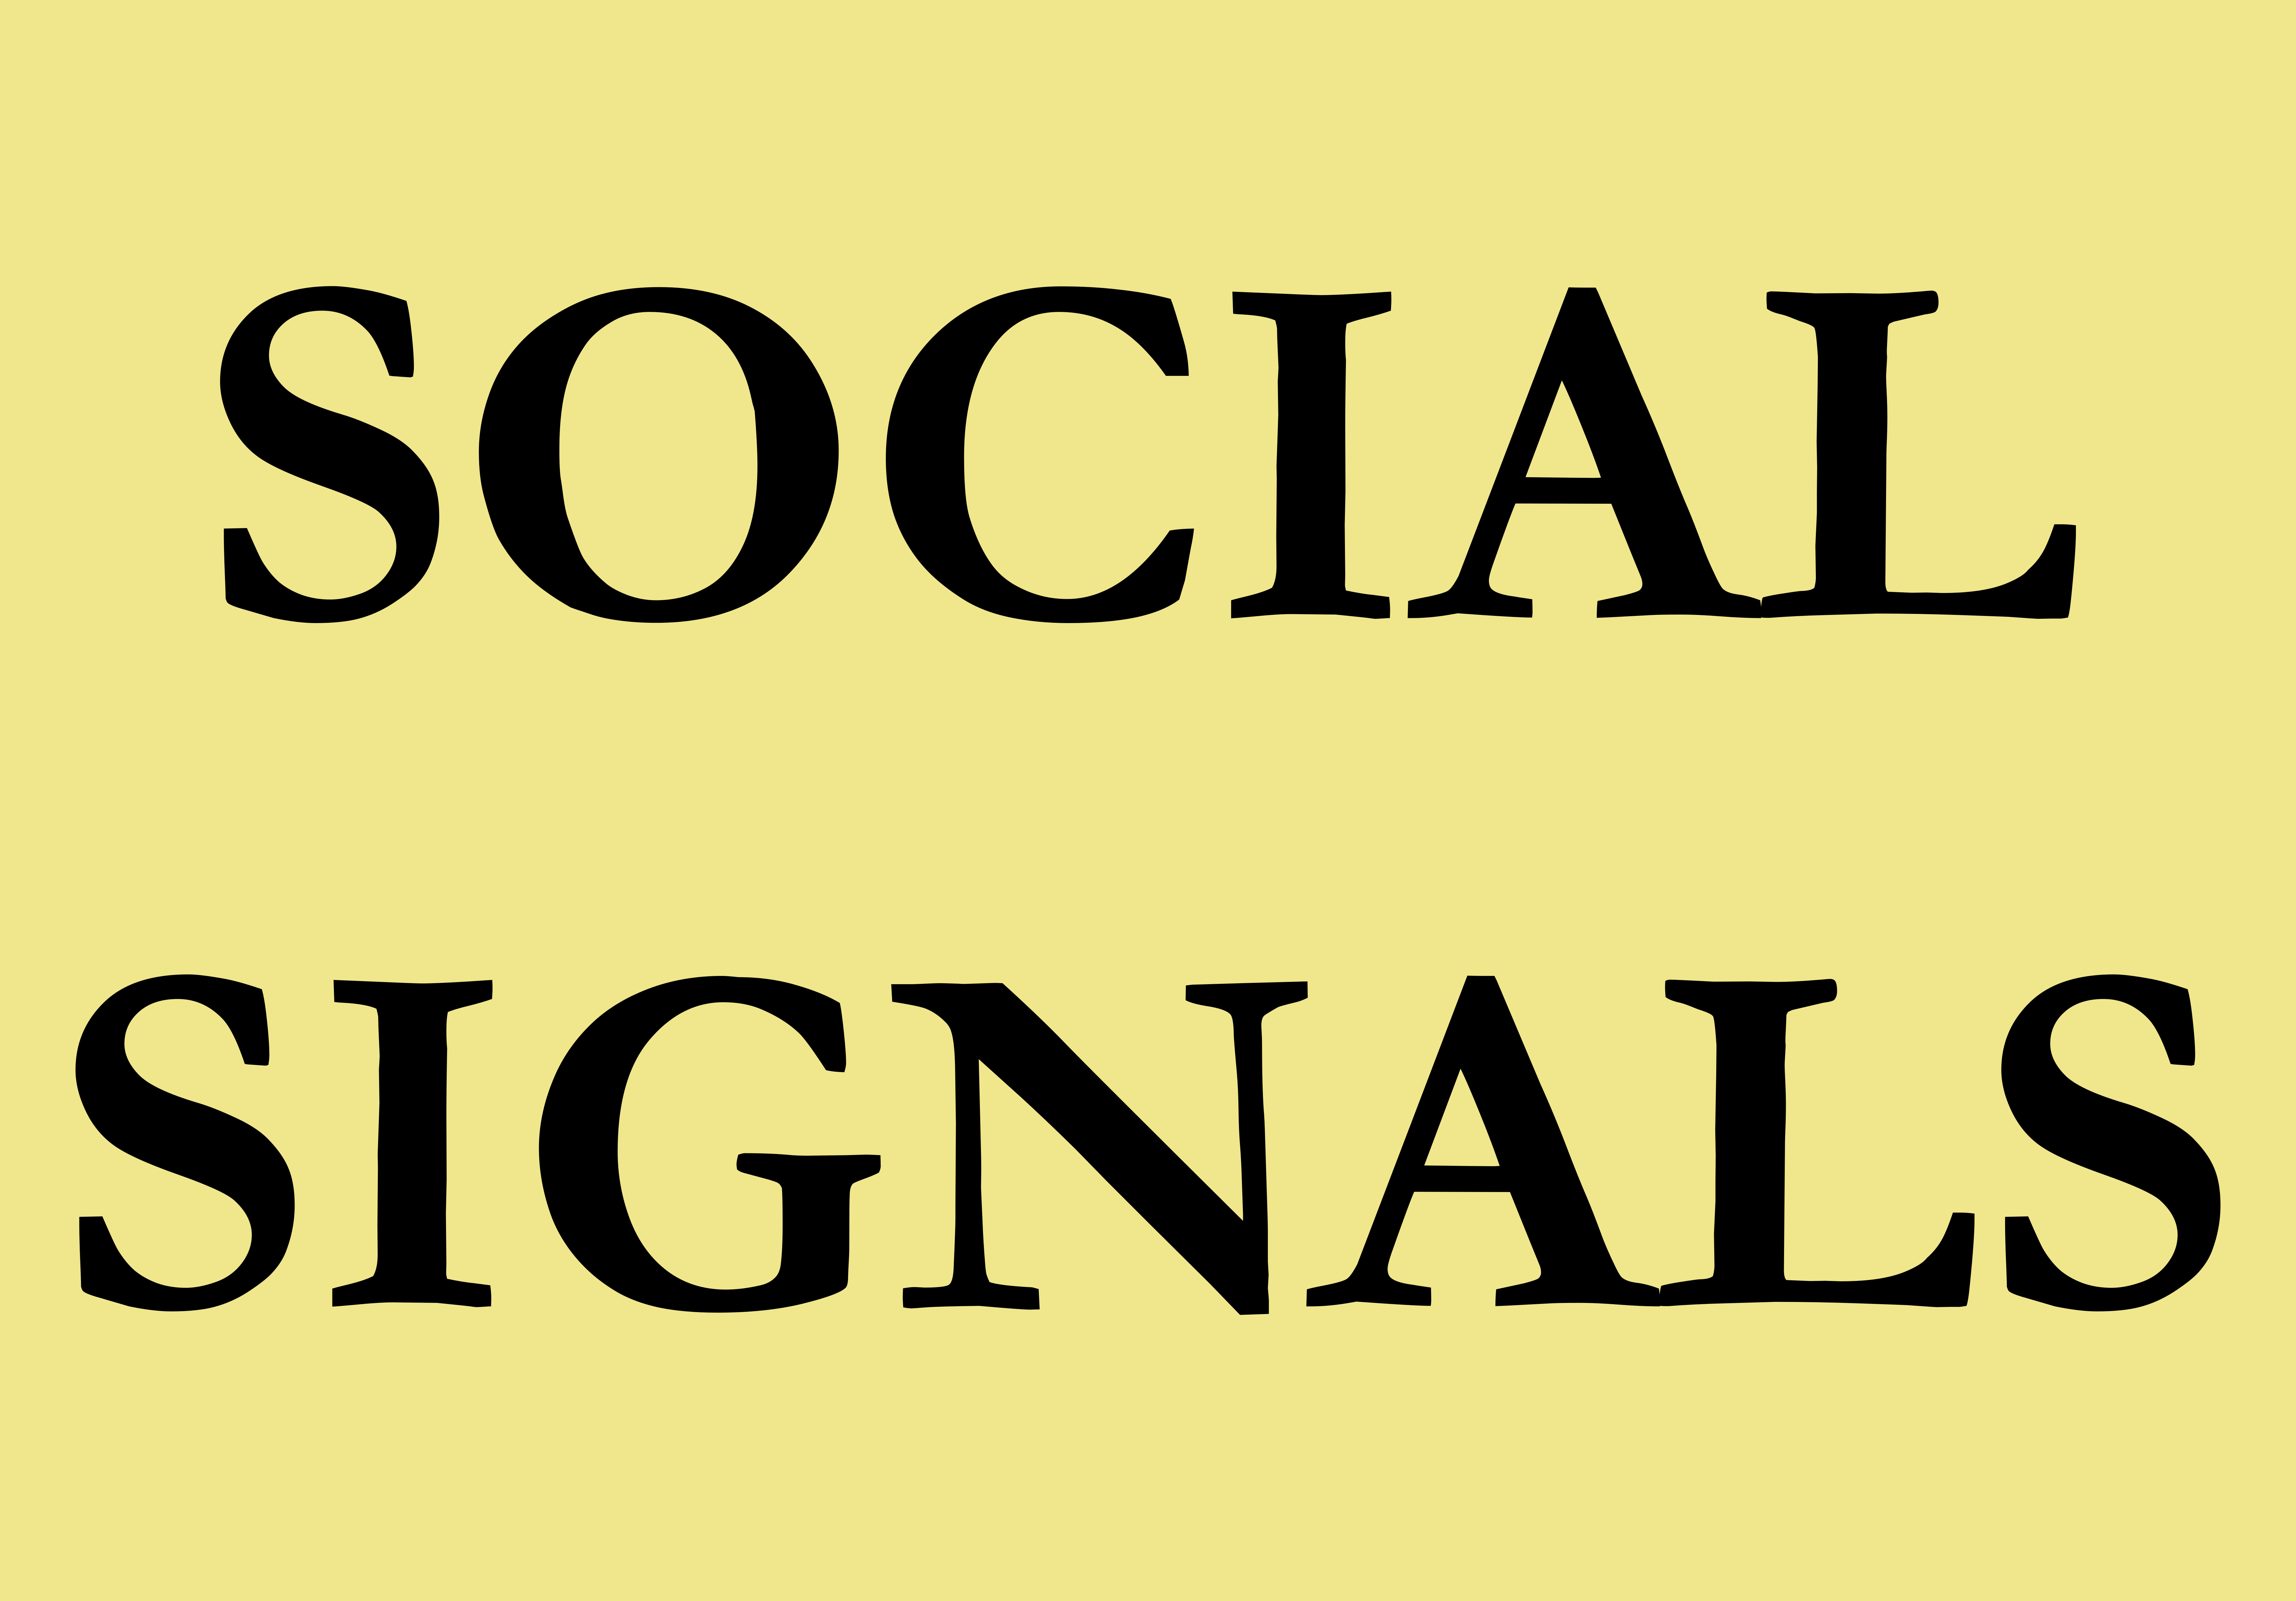 5000 social signals to increase website SEO ranking